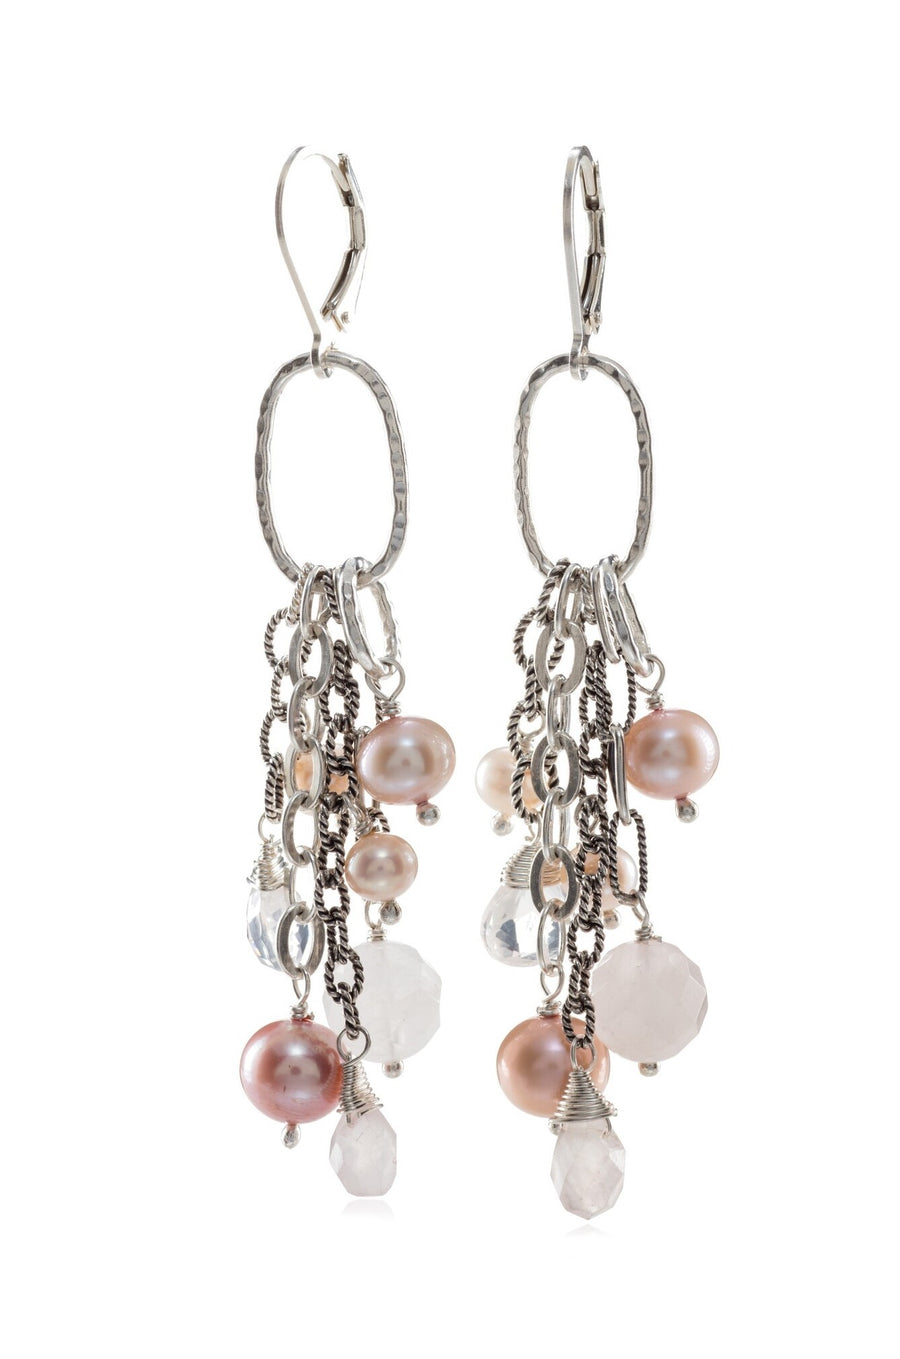 Sterling Silver Mixed Beads and Pearls Dangle Earrings (3917RQ)